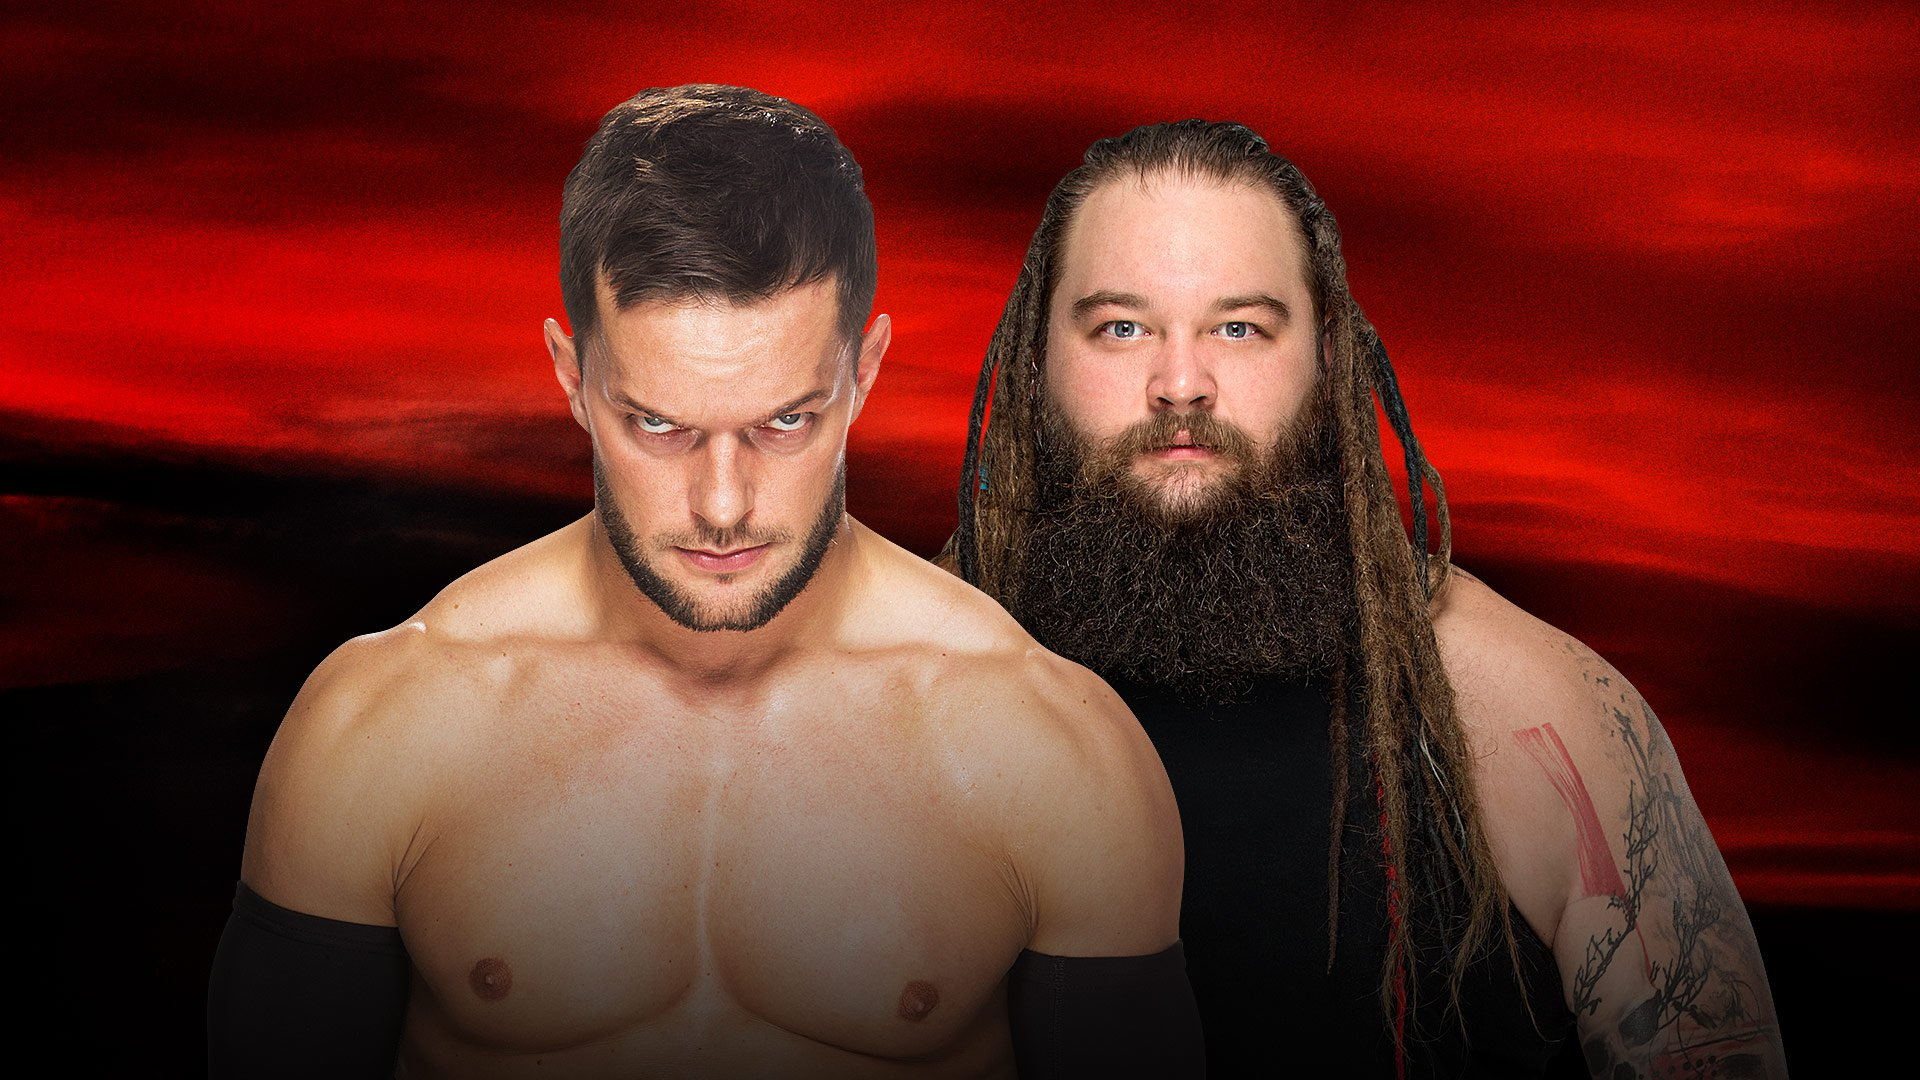 WWE No Mercy 2017: Finn Bálor vs. Bray Wyatt